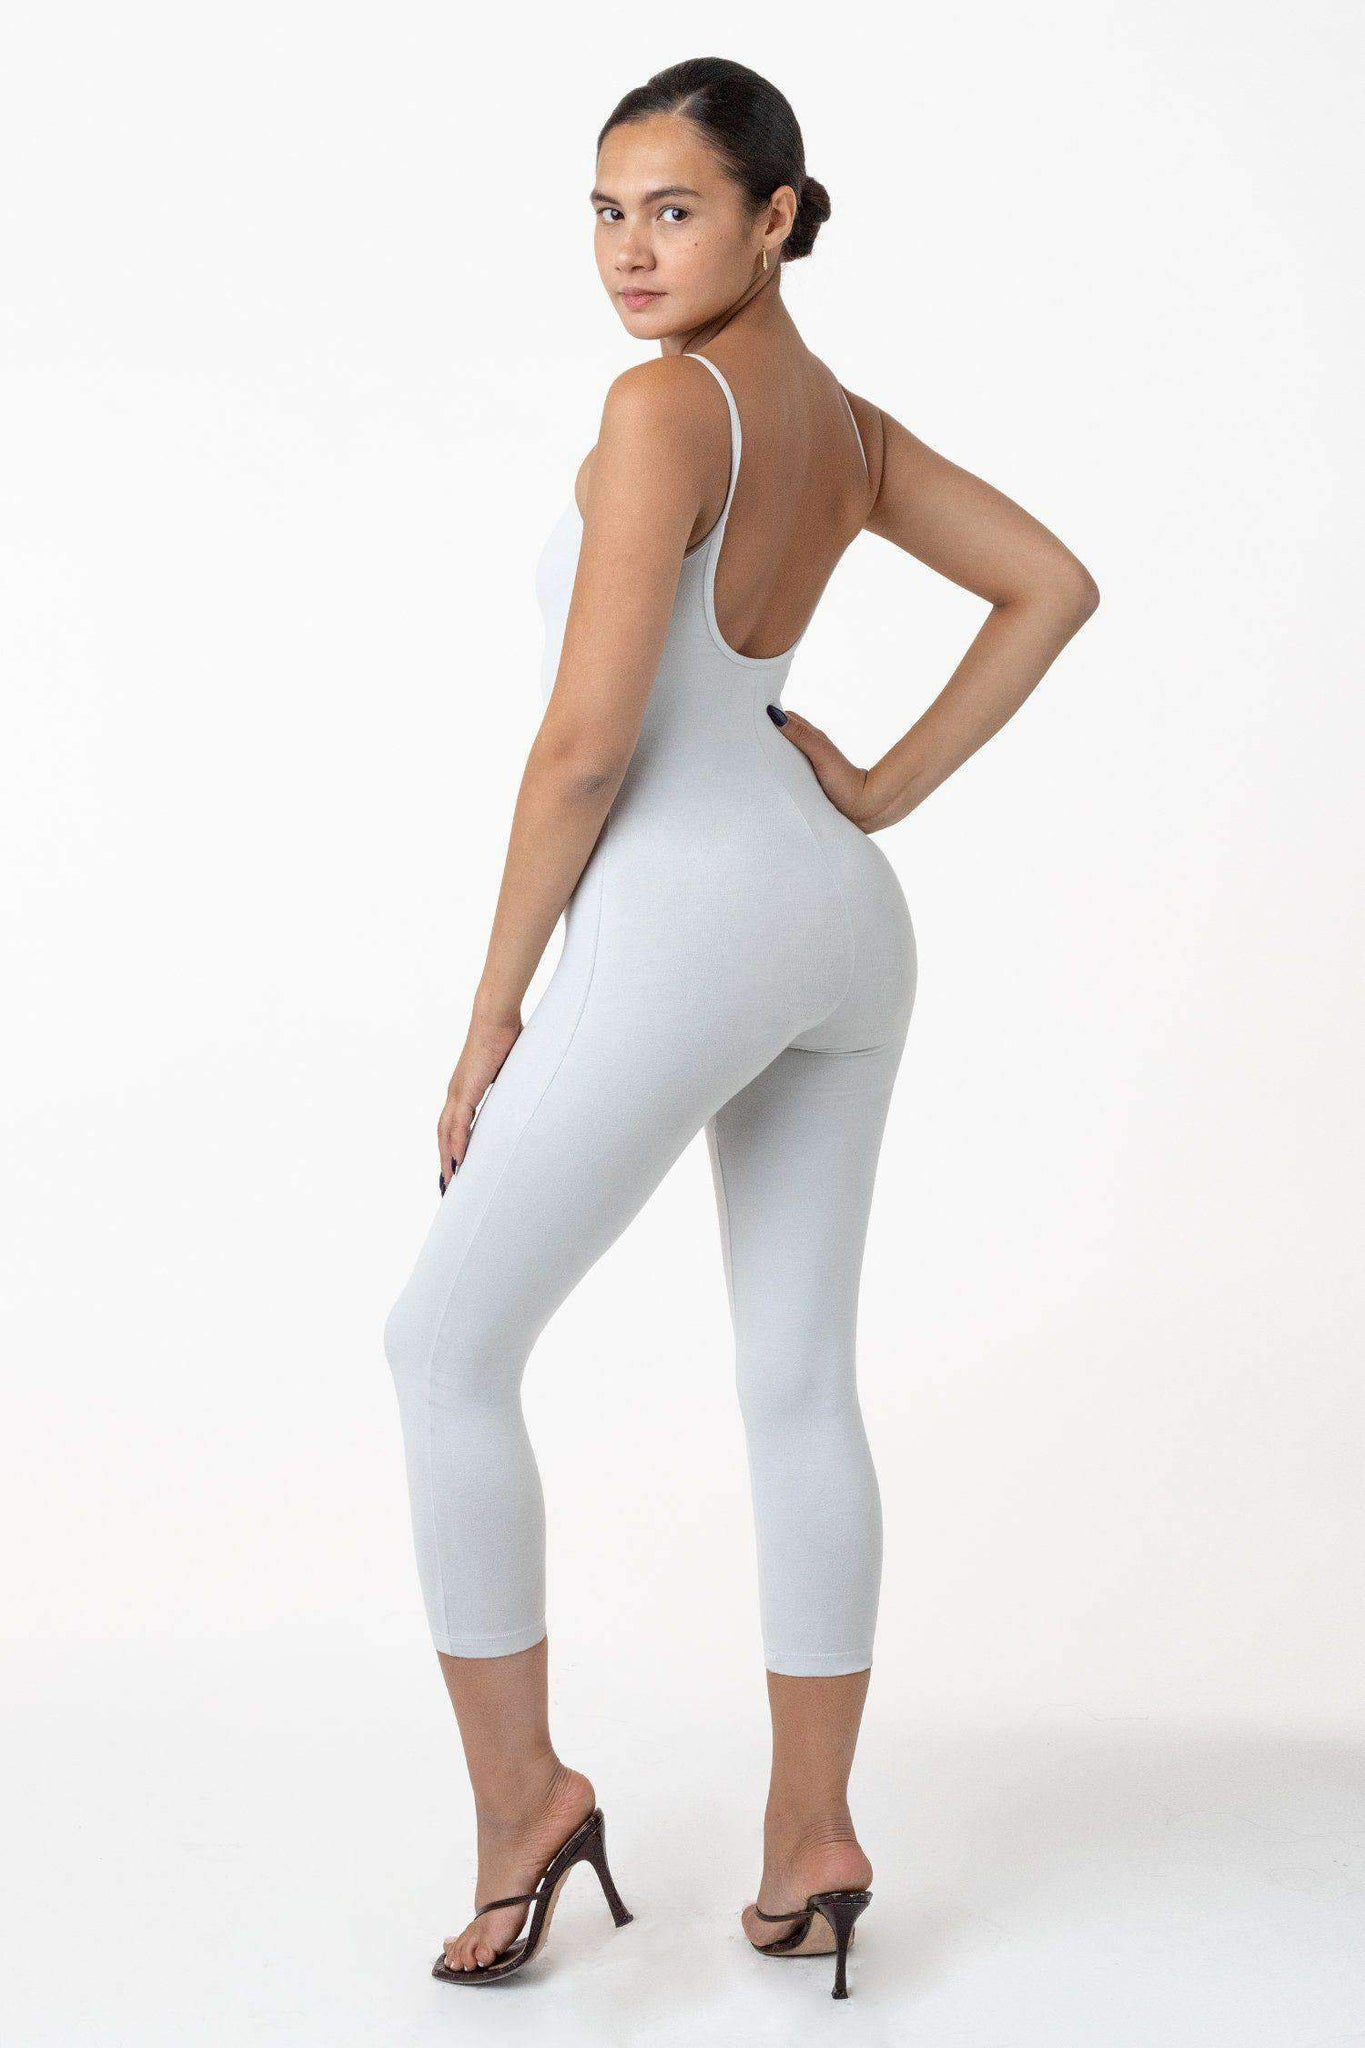 83026GD - Garment Dye Cropped Spaghetti Unitard Bodysuits Los Angeles Apparel Light Grey XS